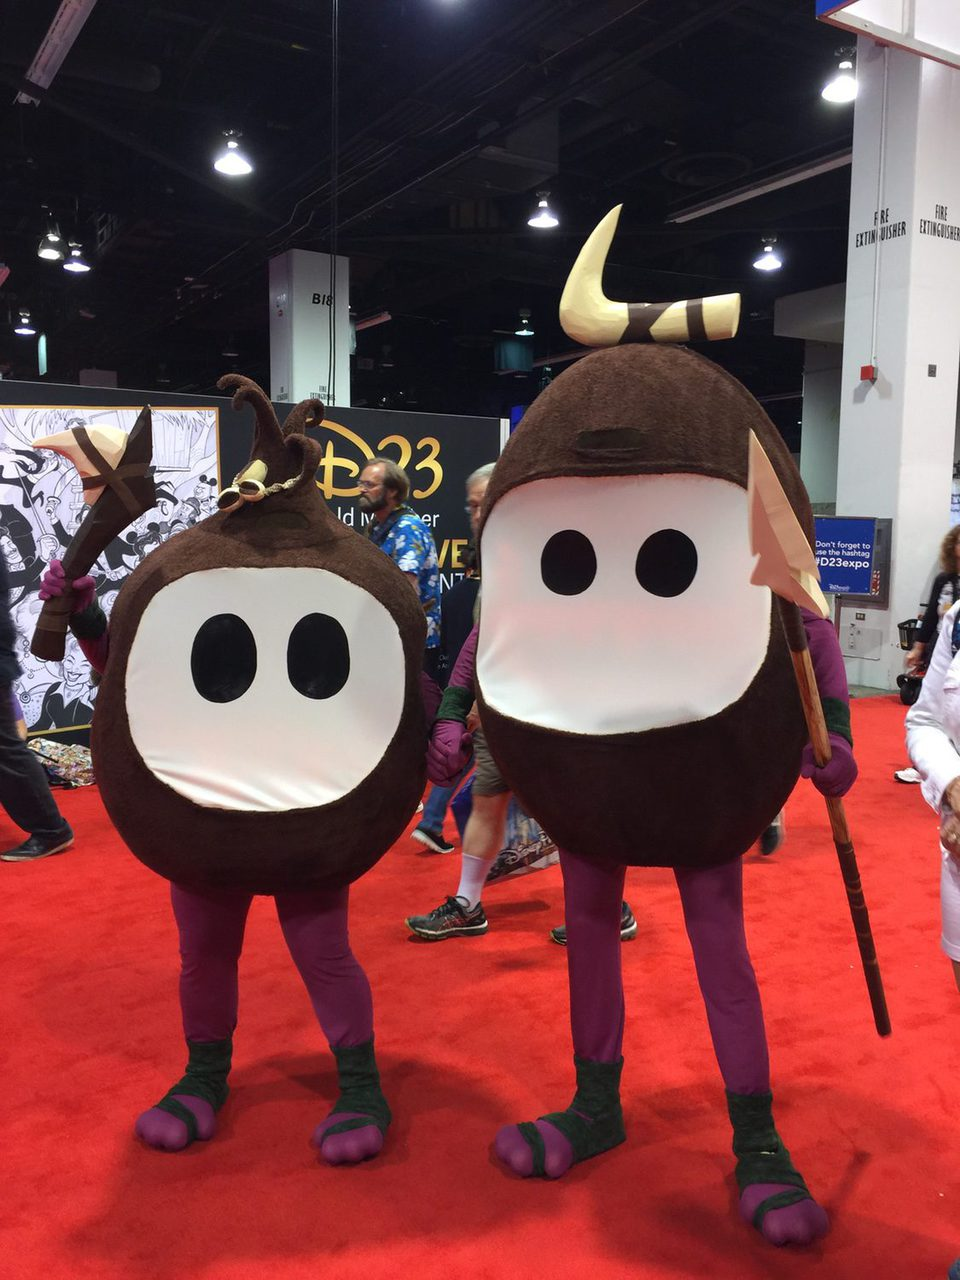 Fans Dressed Up Like Kakamora Pirates From Moana In The D23 Photos